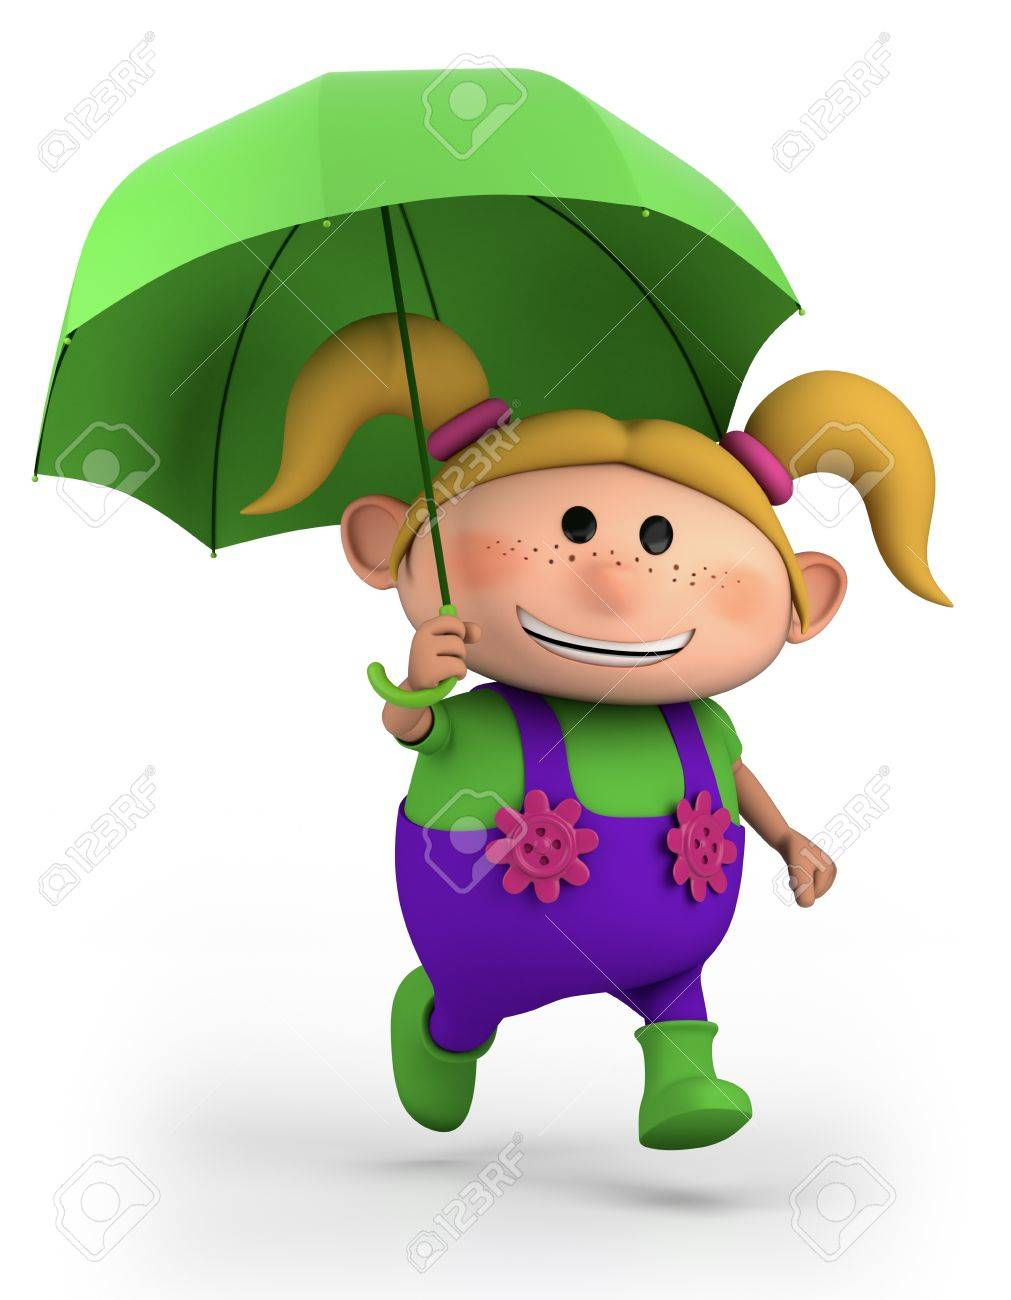 cute school girl with umbrella - high quality 3d illustration Stock Photo - 10927186